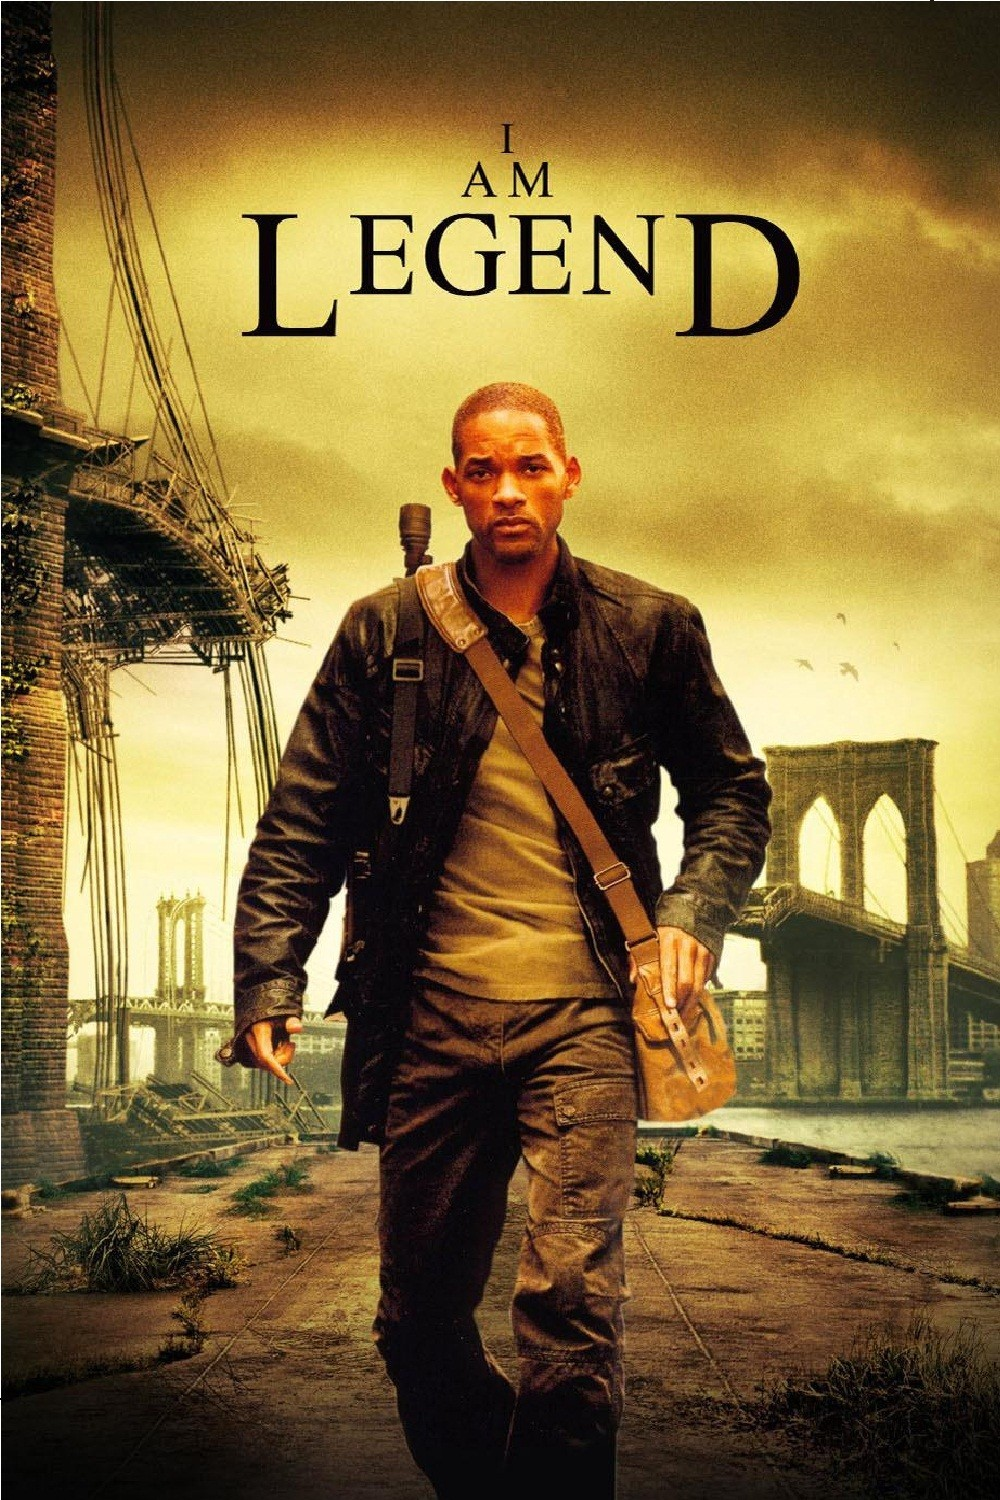 i am legend 2 movie online